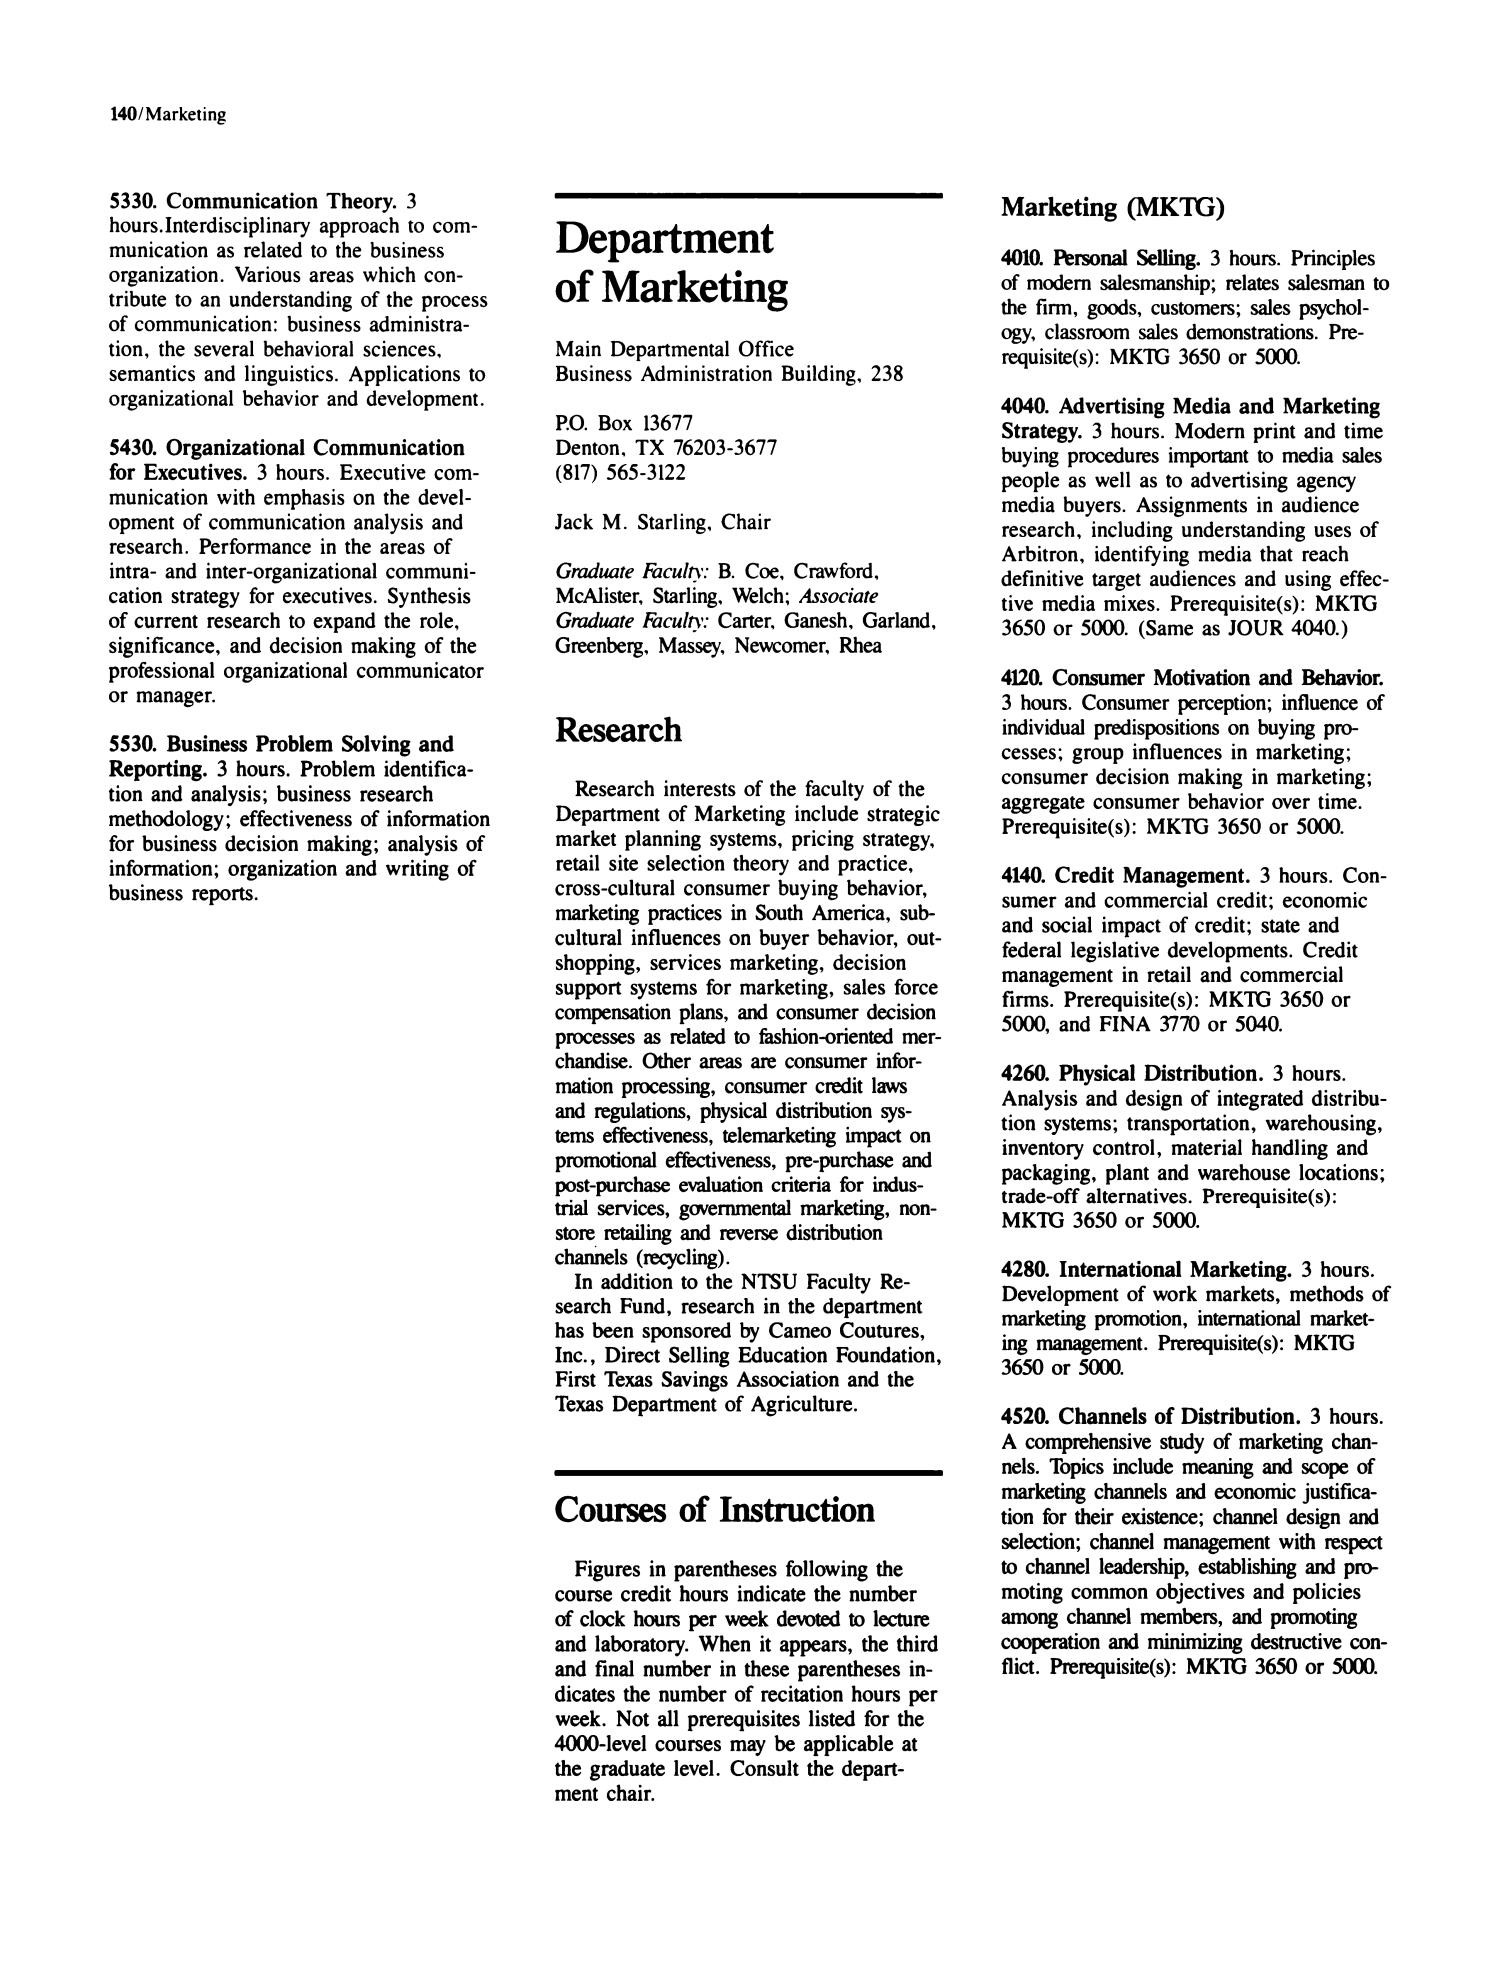 Catalog of North Texas State University, 1987-1988, Graduate - Page